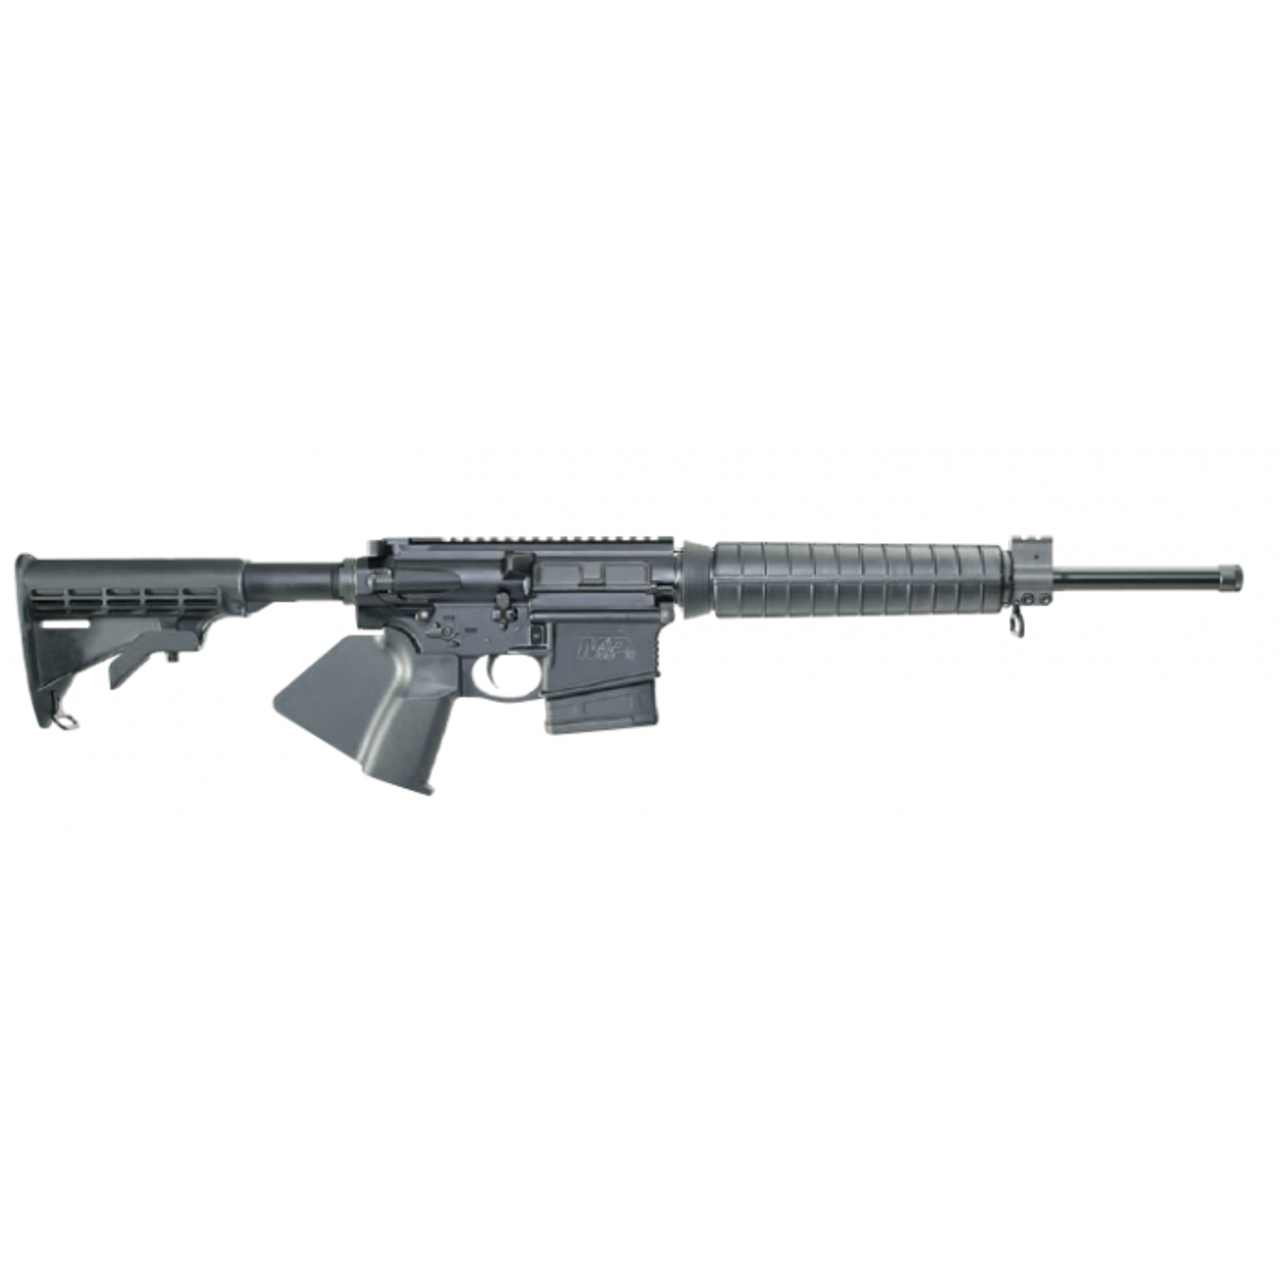 Smith & Wesson M&P10 Sport FACTORY CALIFORNIA LEGAL - .308/7.62x51